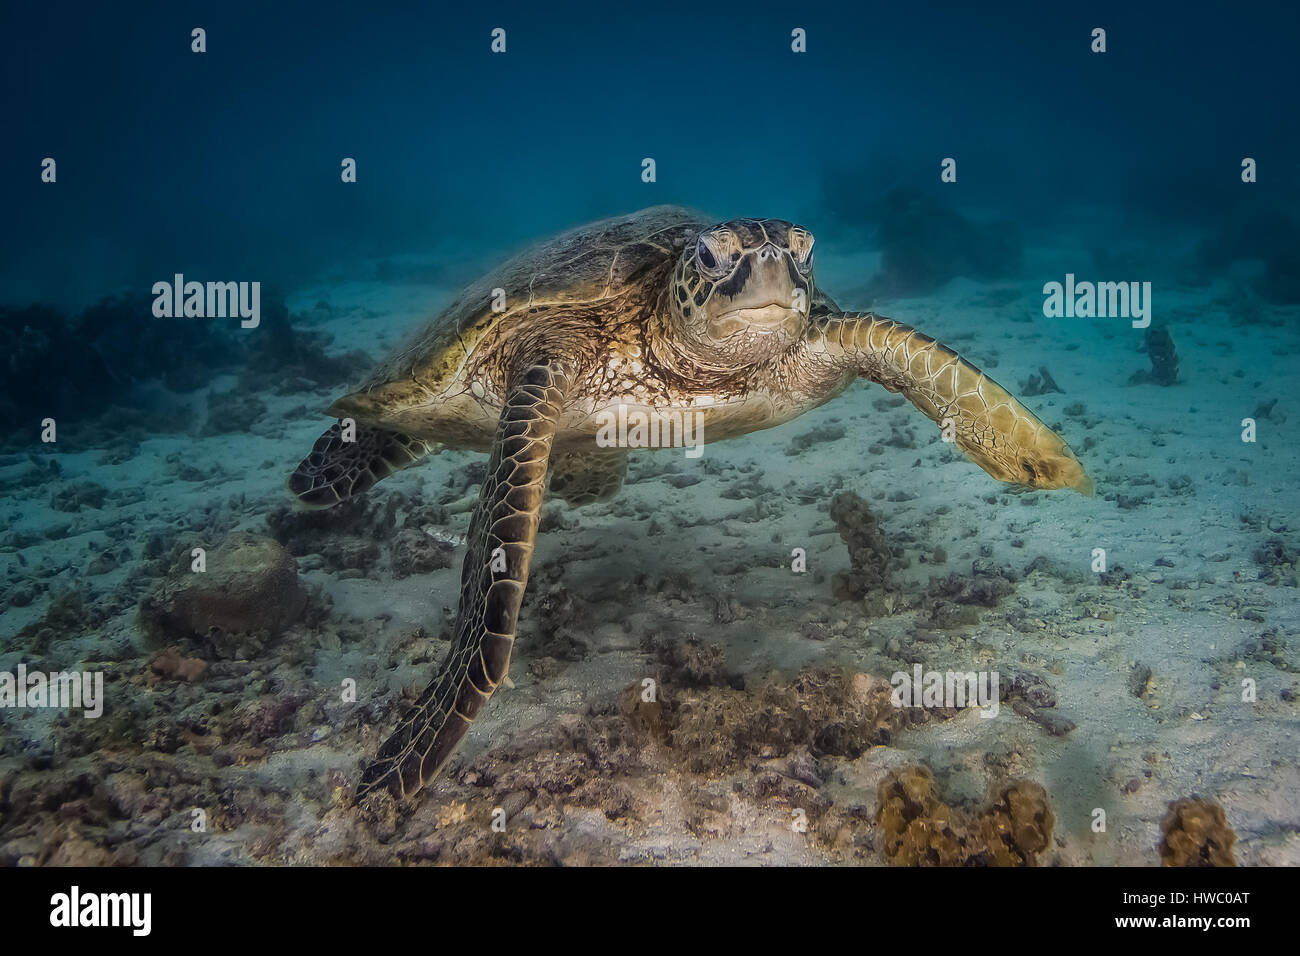 Green Sea Turtle (Chelonia mydas) - Stock Image